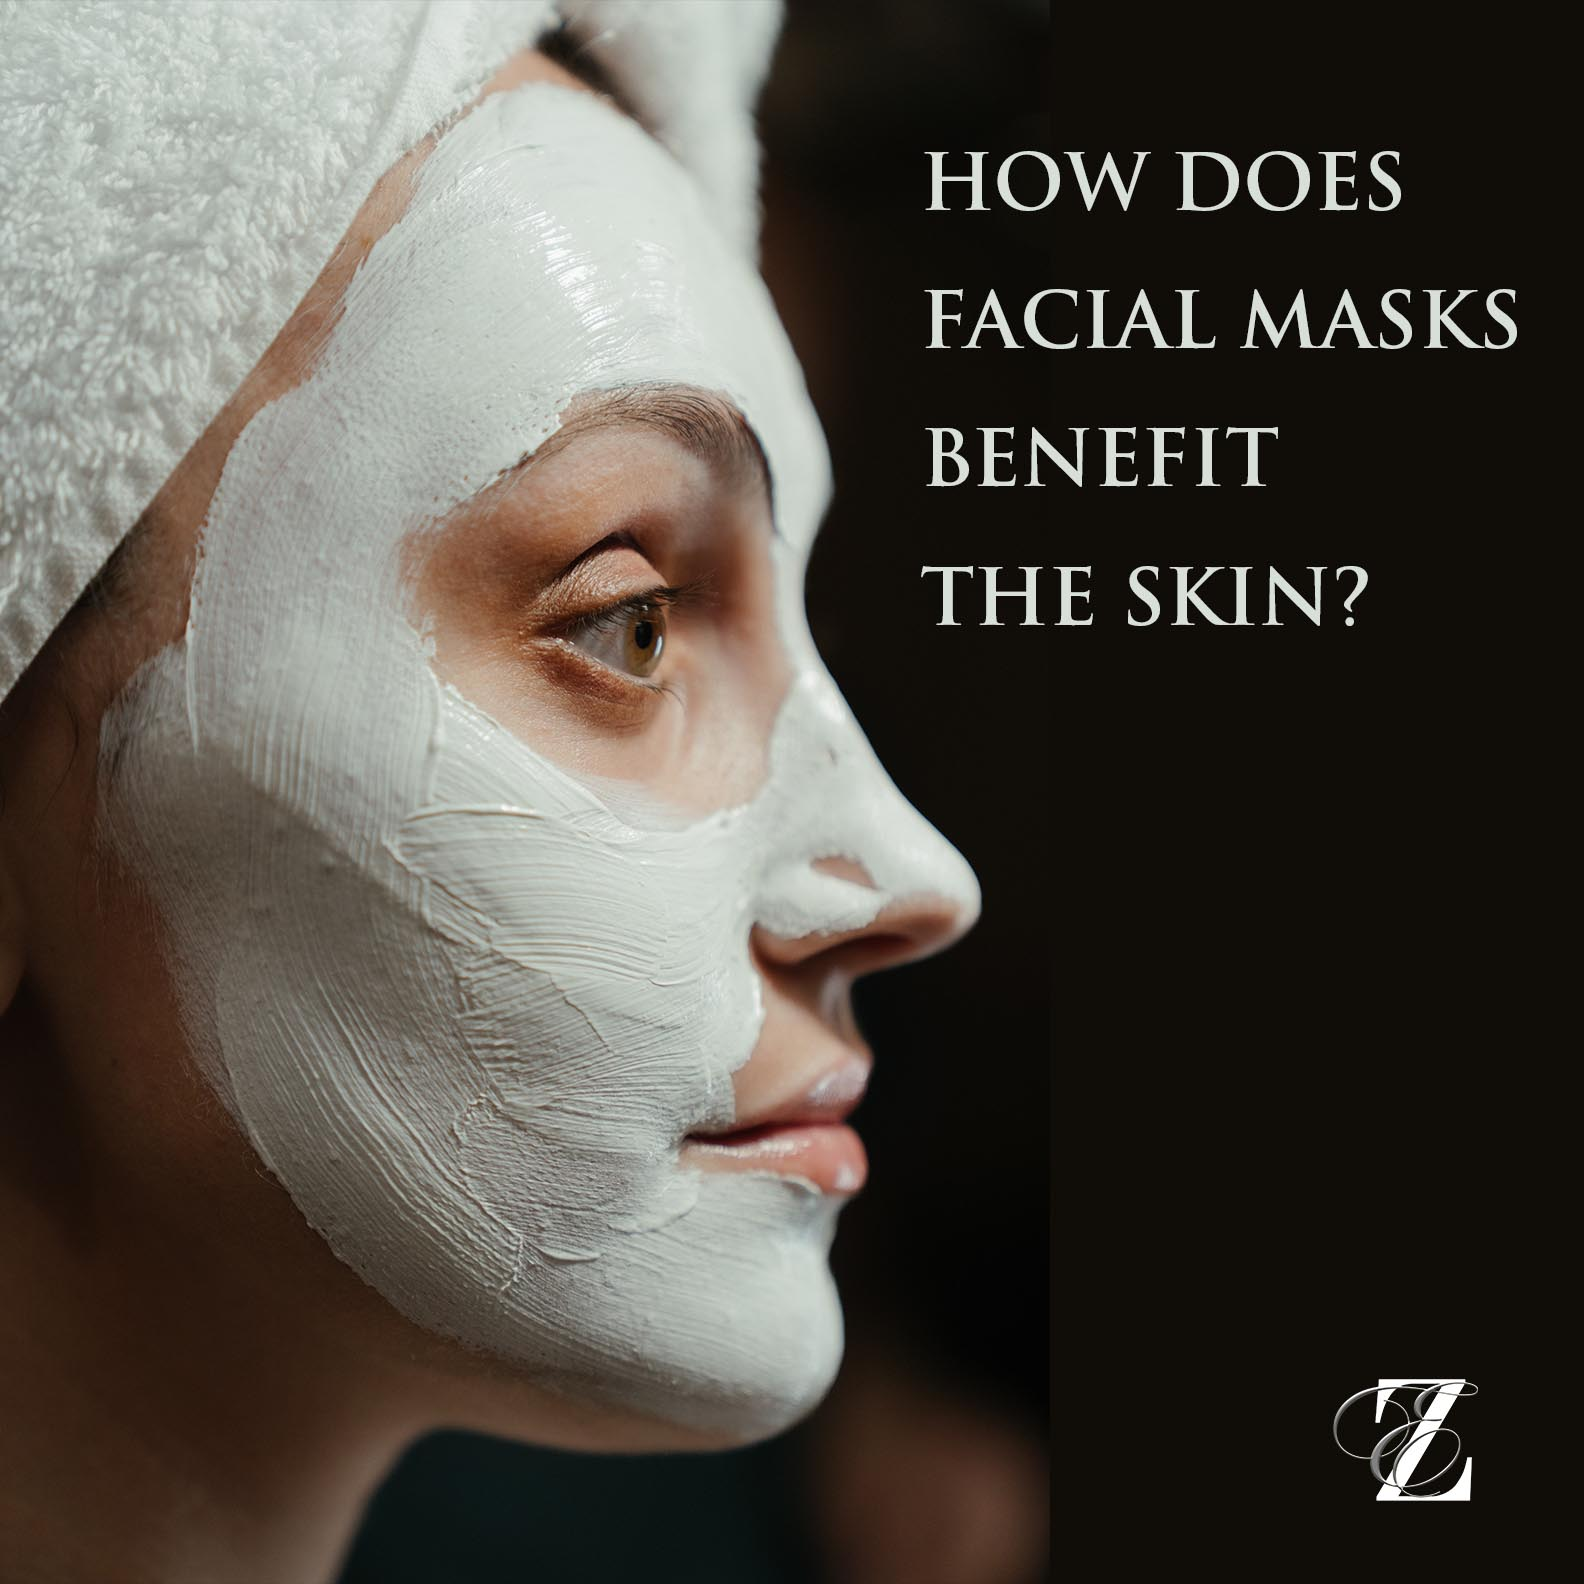 HOW DOES FACIAL MASKS BENEFIT THE SKIN?